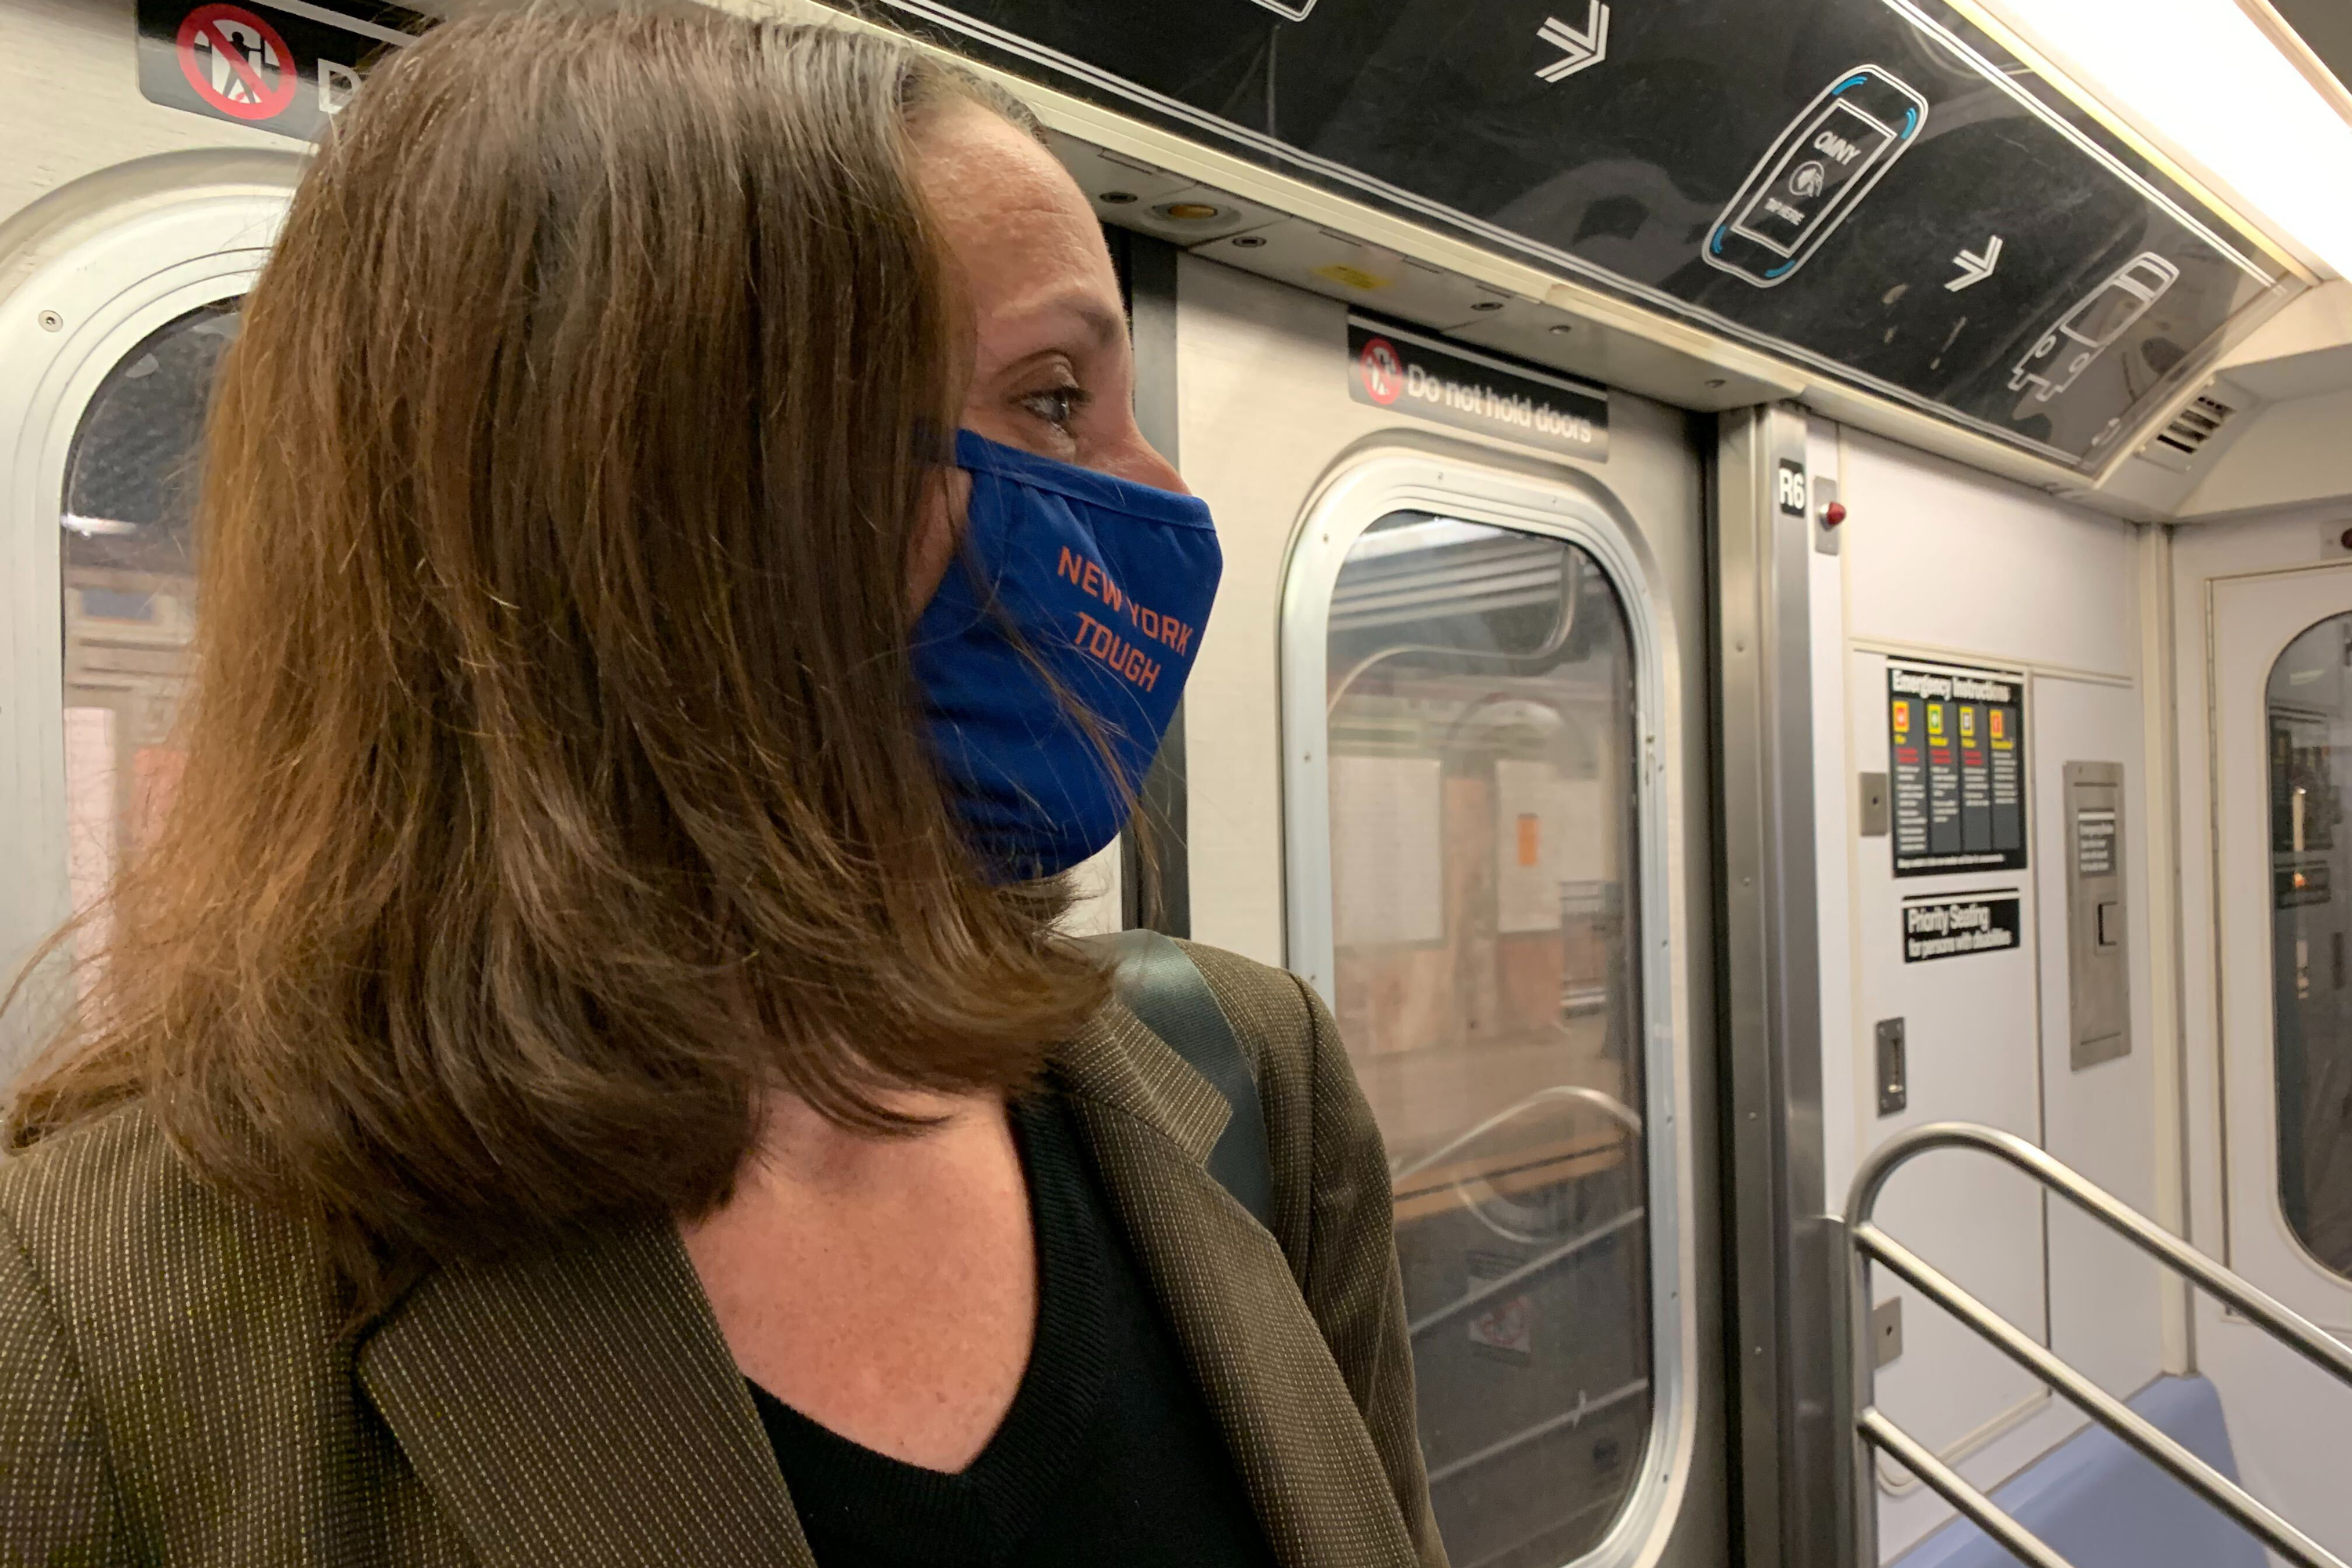 Sally Librera was planning to leave her job as head of subways at New York City Transit, June 29, 2020.